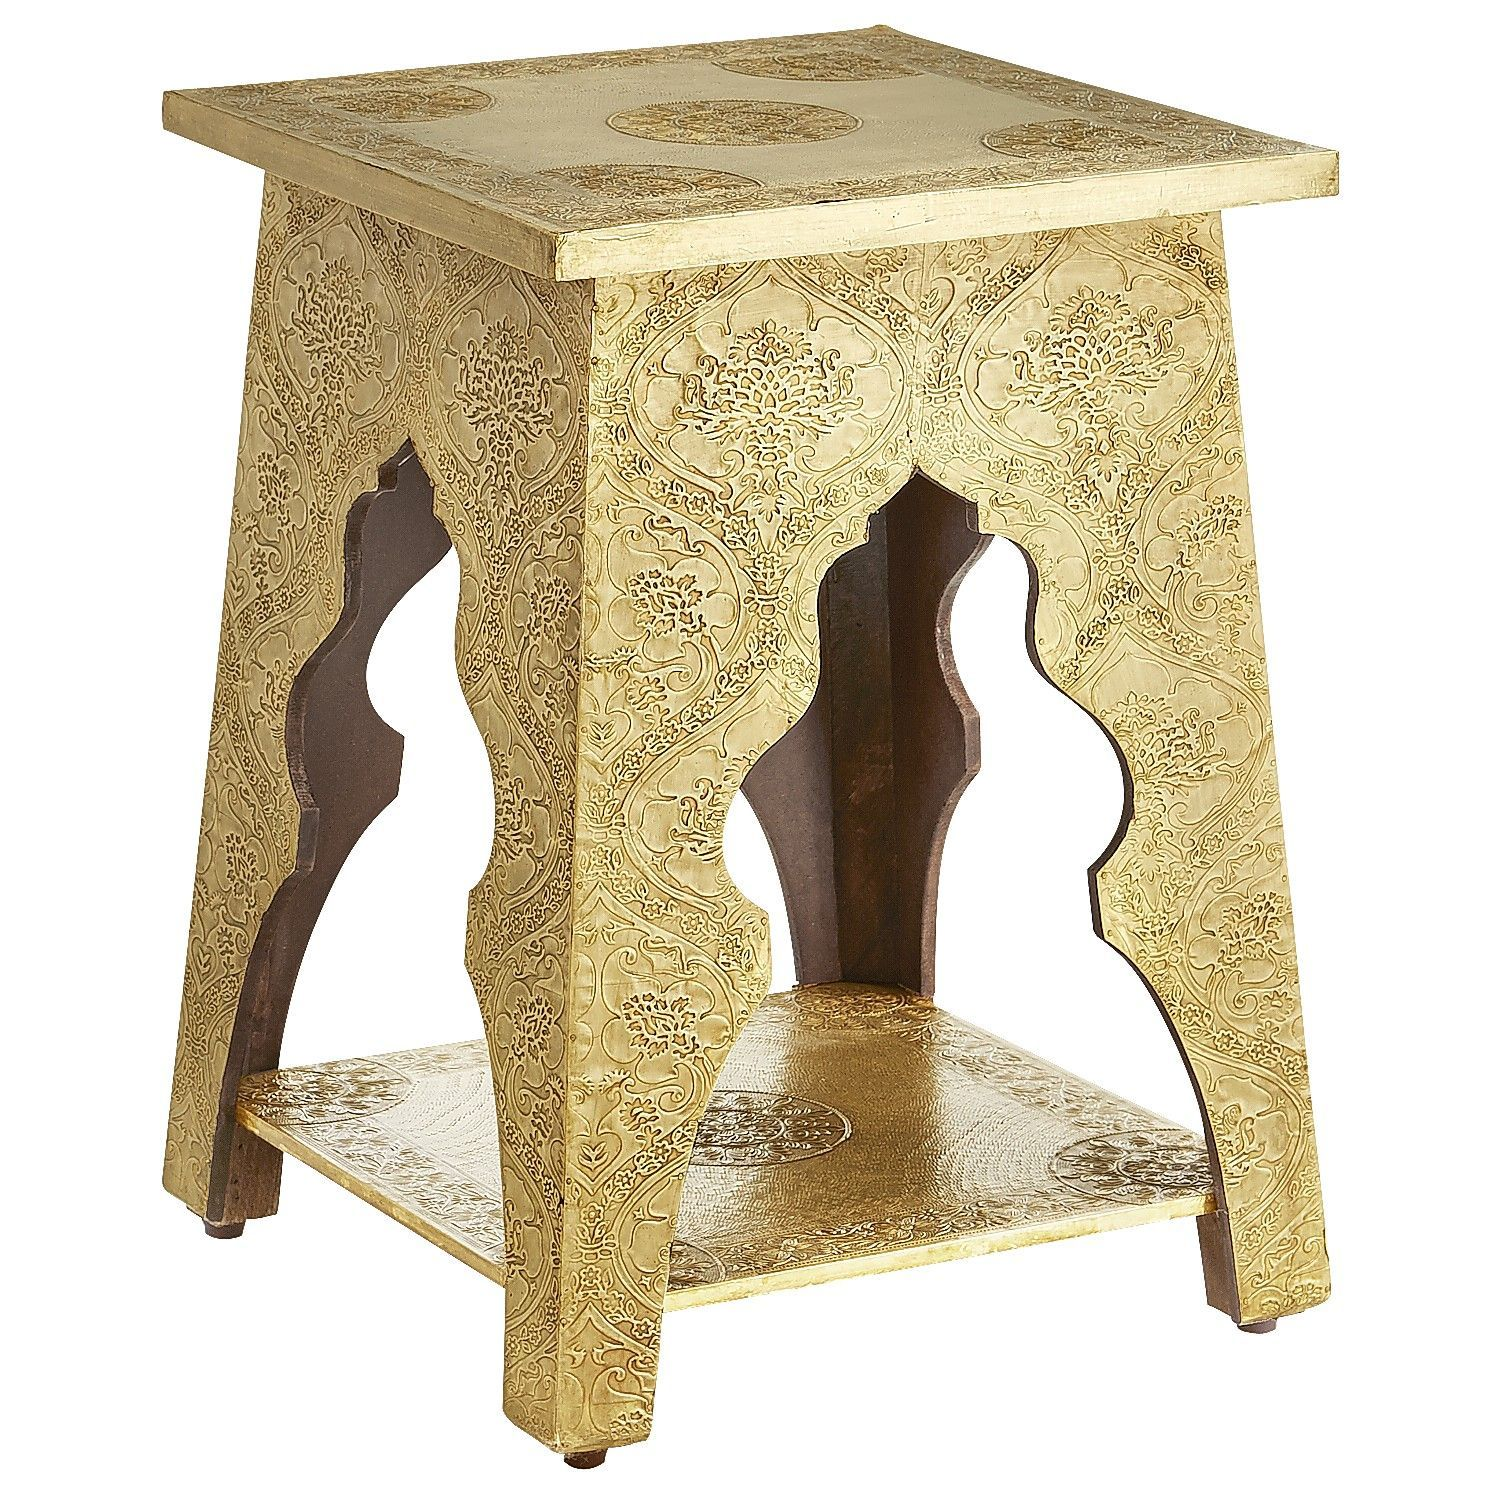 marrakesh accent table brass pier imports one tribe tables rustic wine rack home ornaments round dining for bar height legs mid century modern chairs chests and consoles concrete